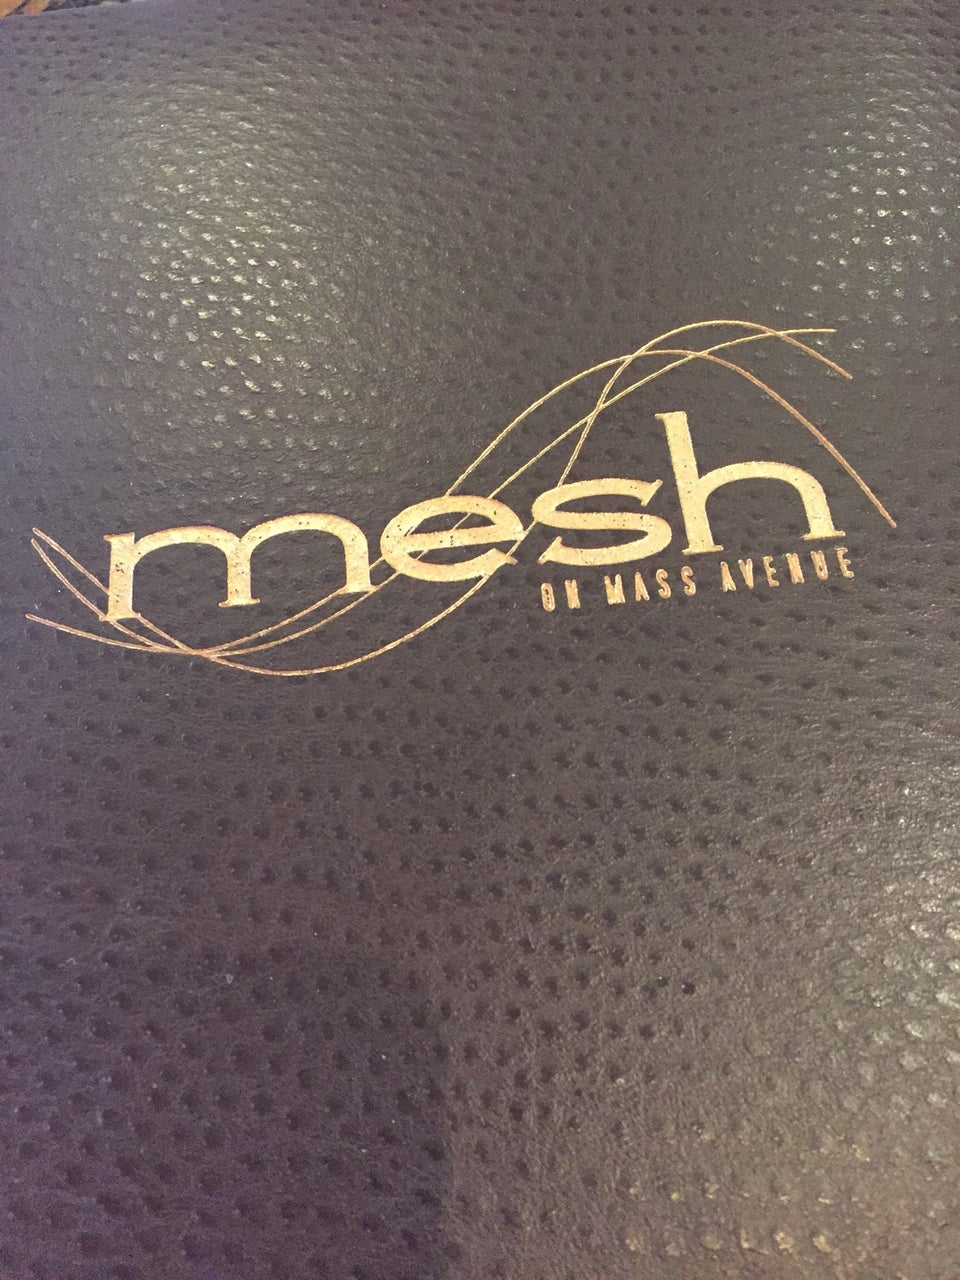 Photo of Mesh on Mass